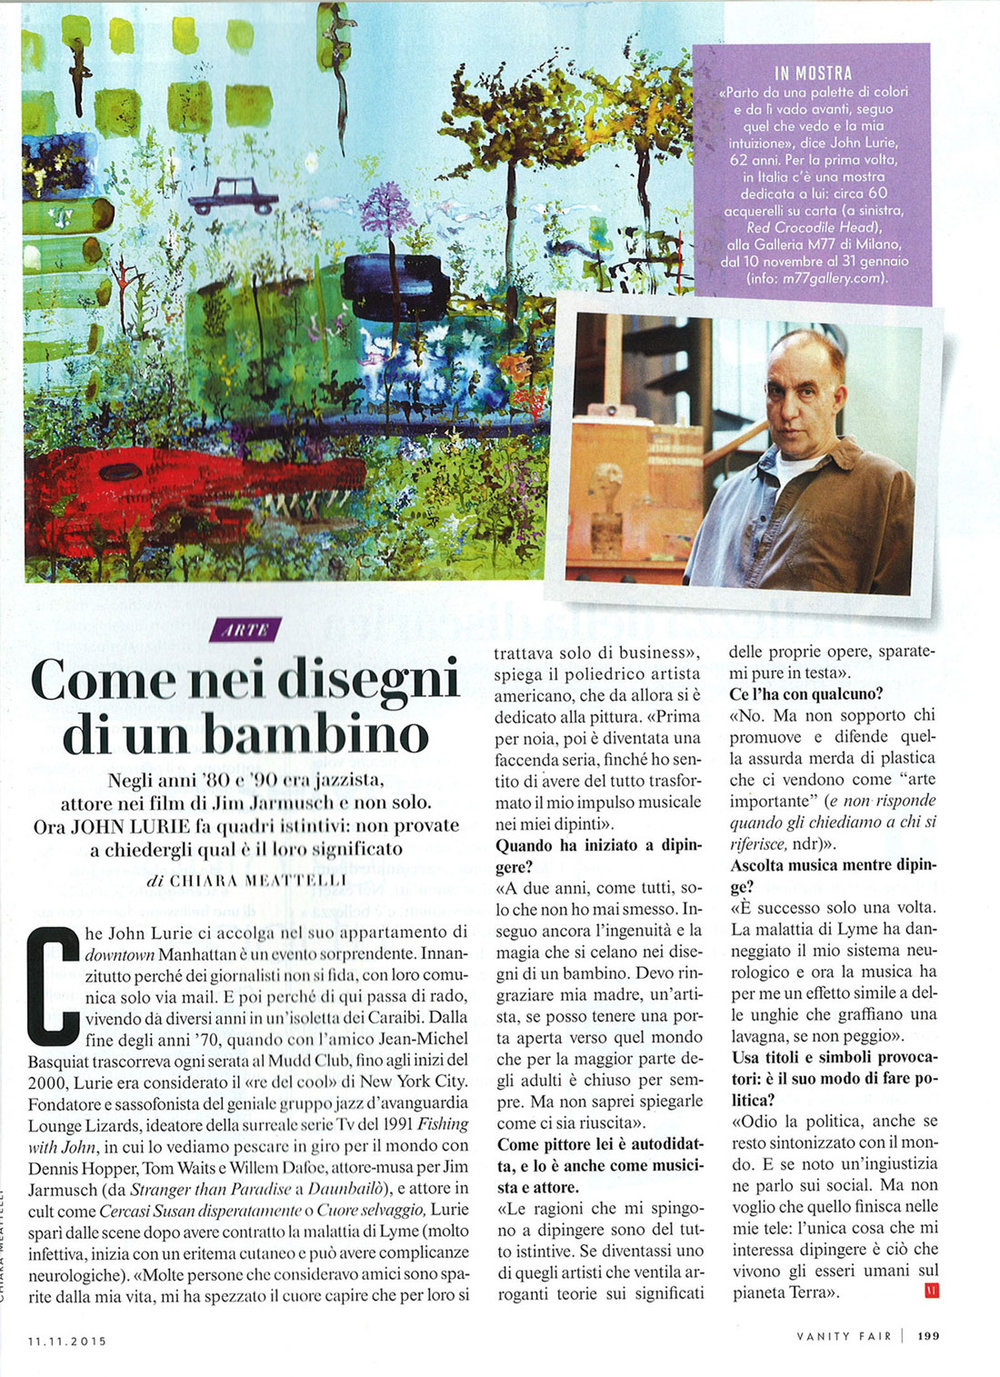 Vanity Fair: John Lurie interview & photo